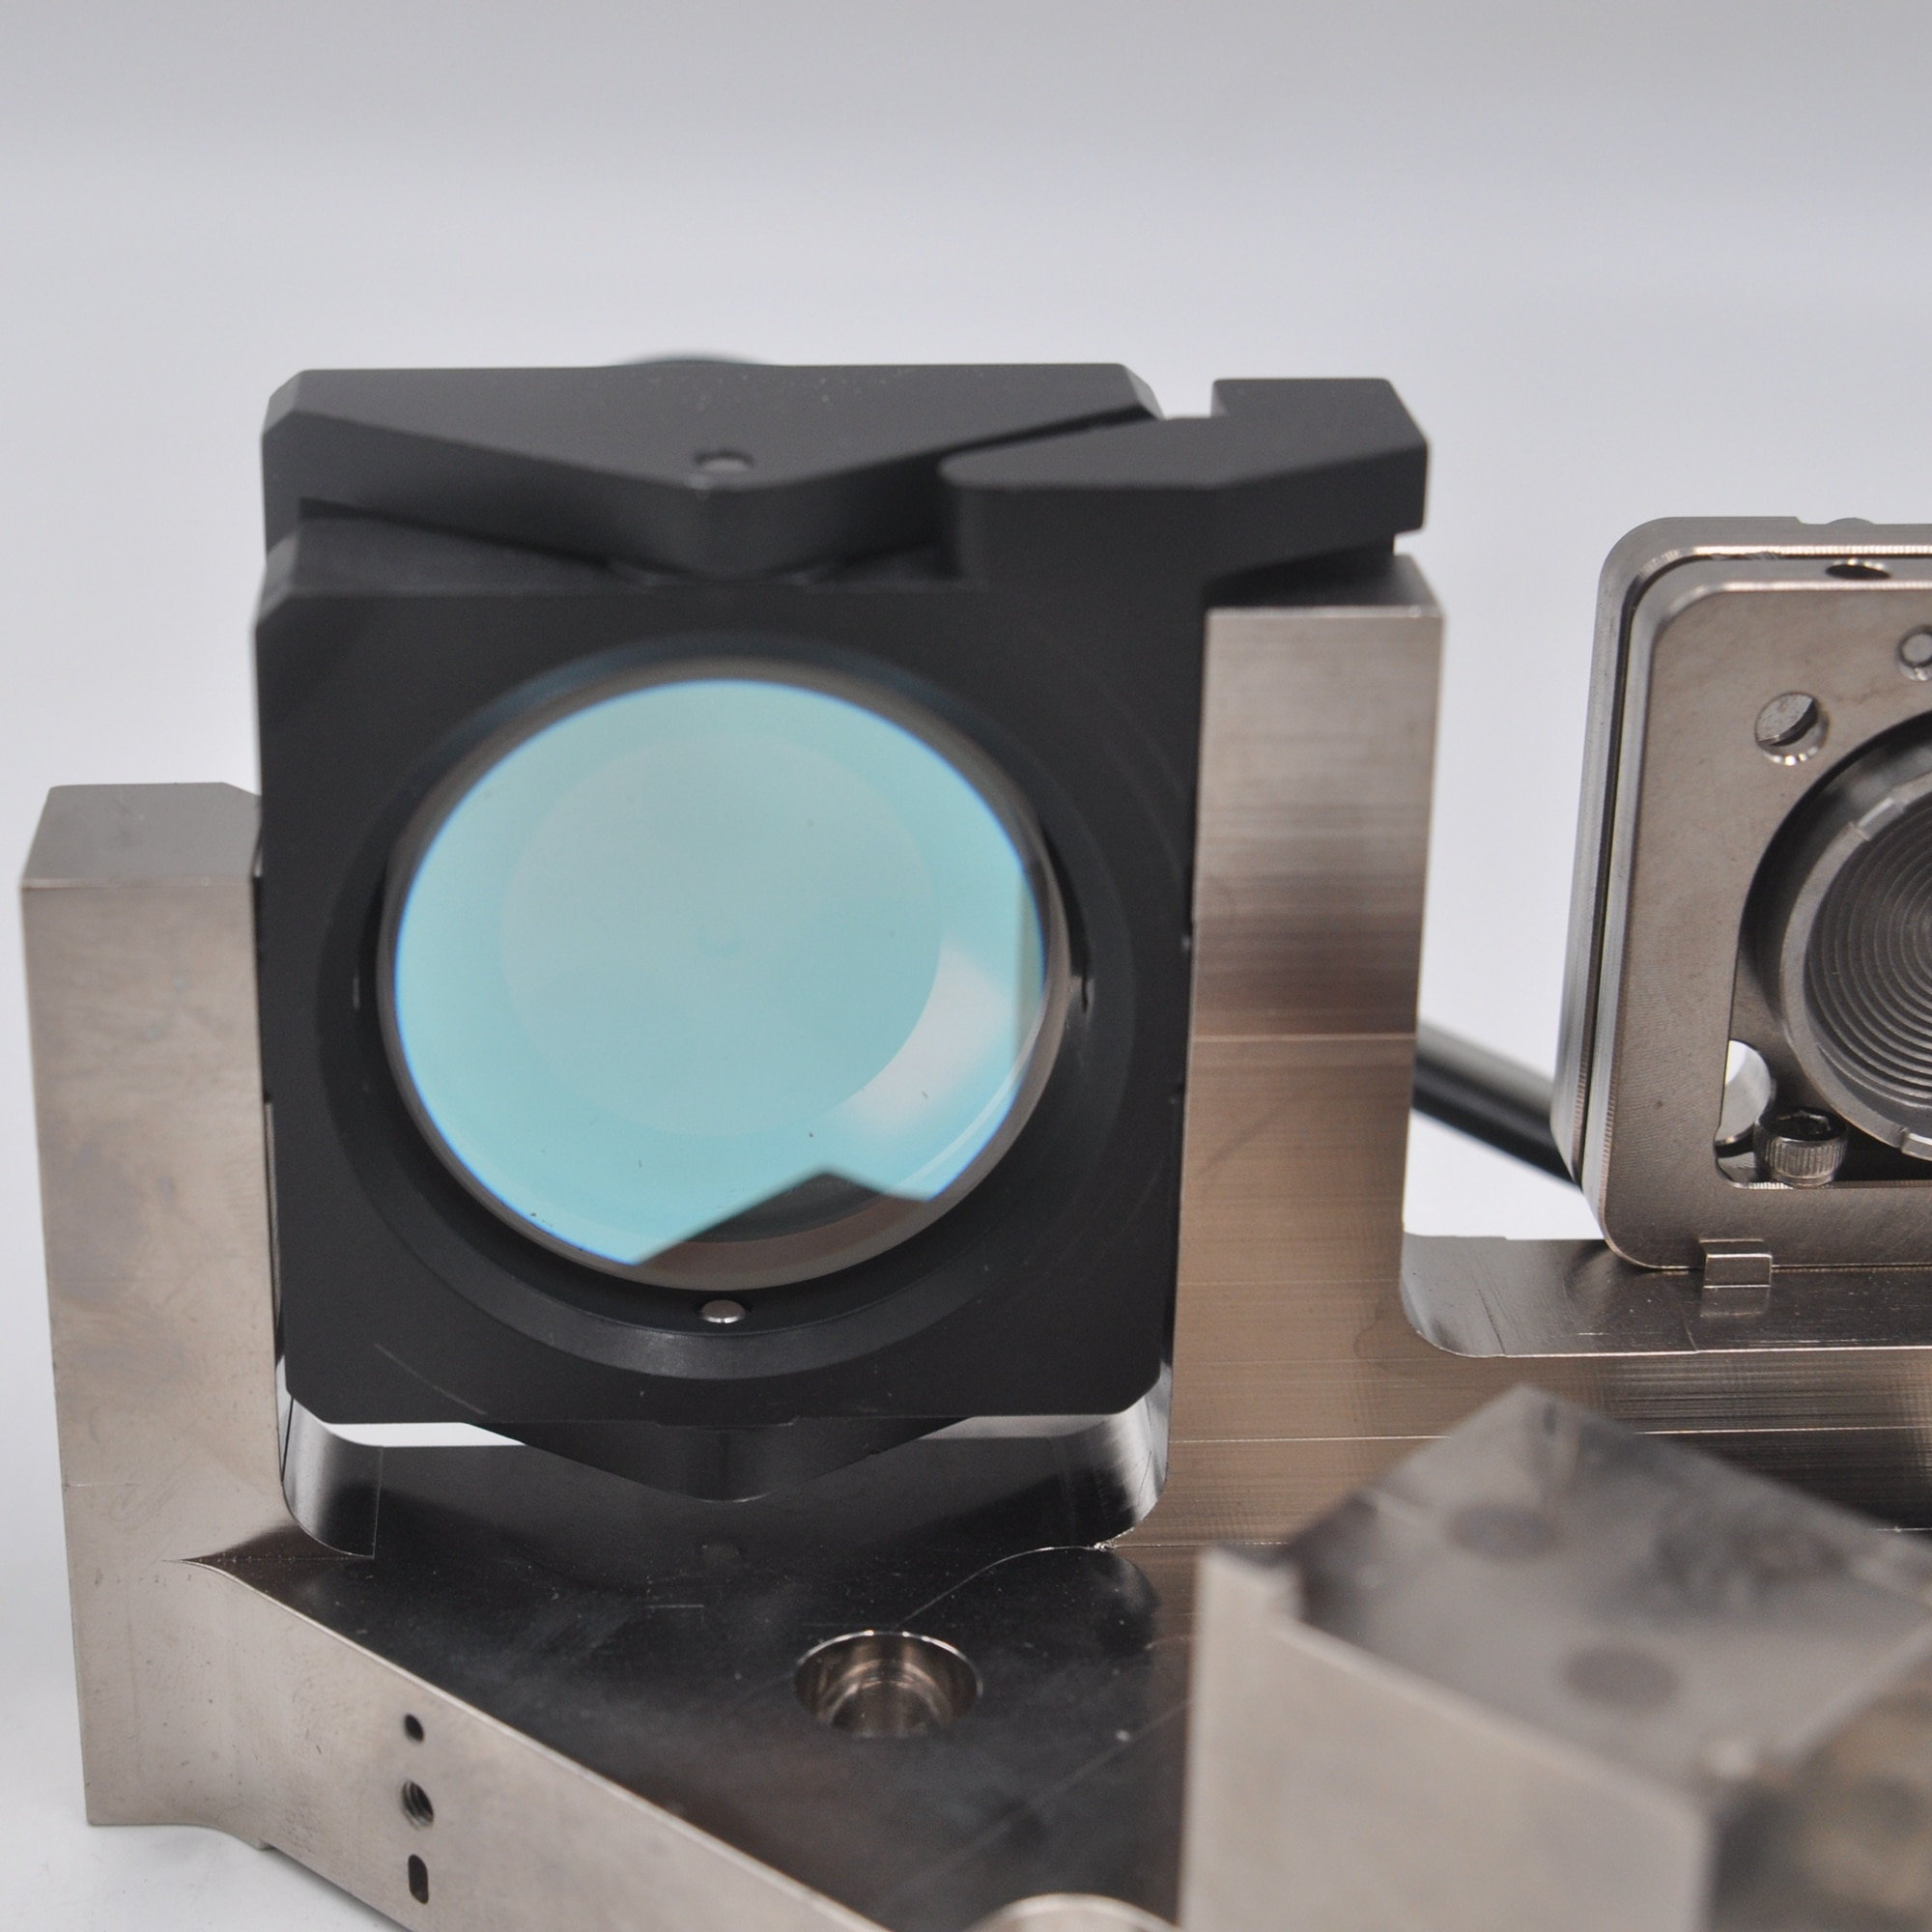 Disassembly machine for optics 164855 REV.A electric optical mirror surface color new packaged enlarge